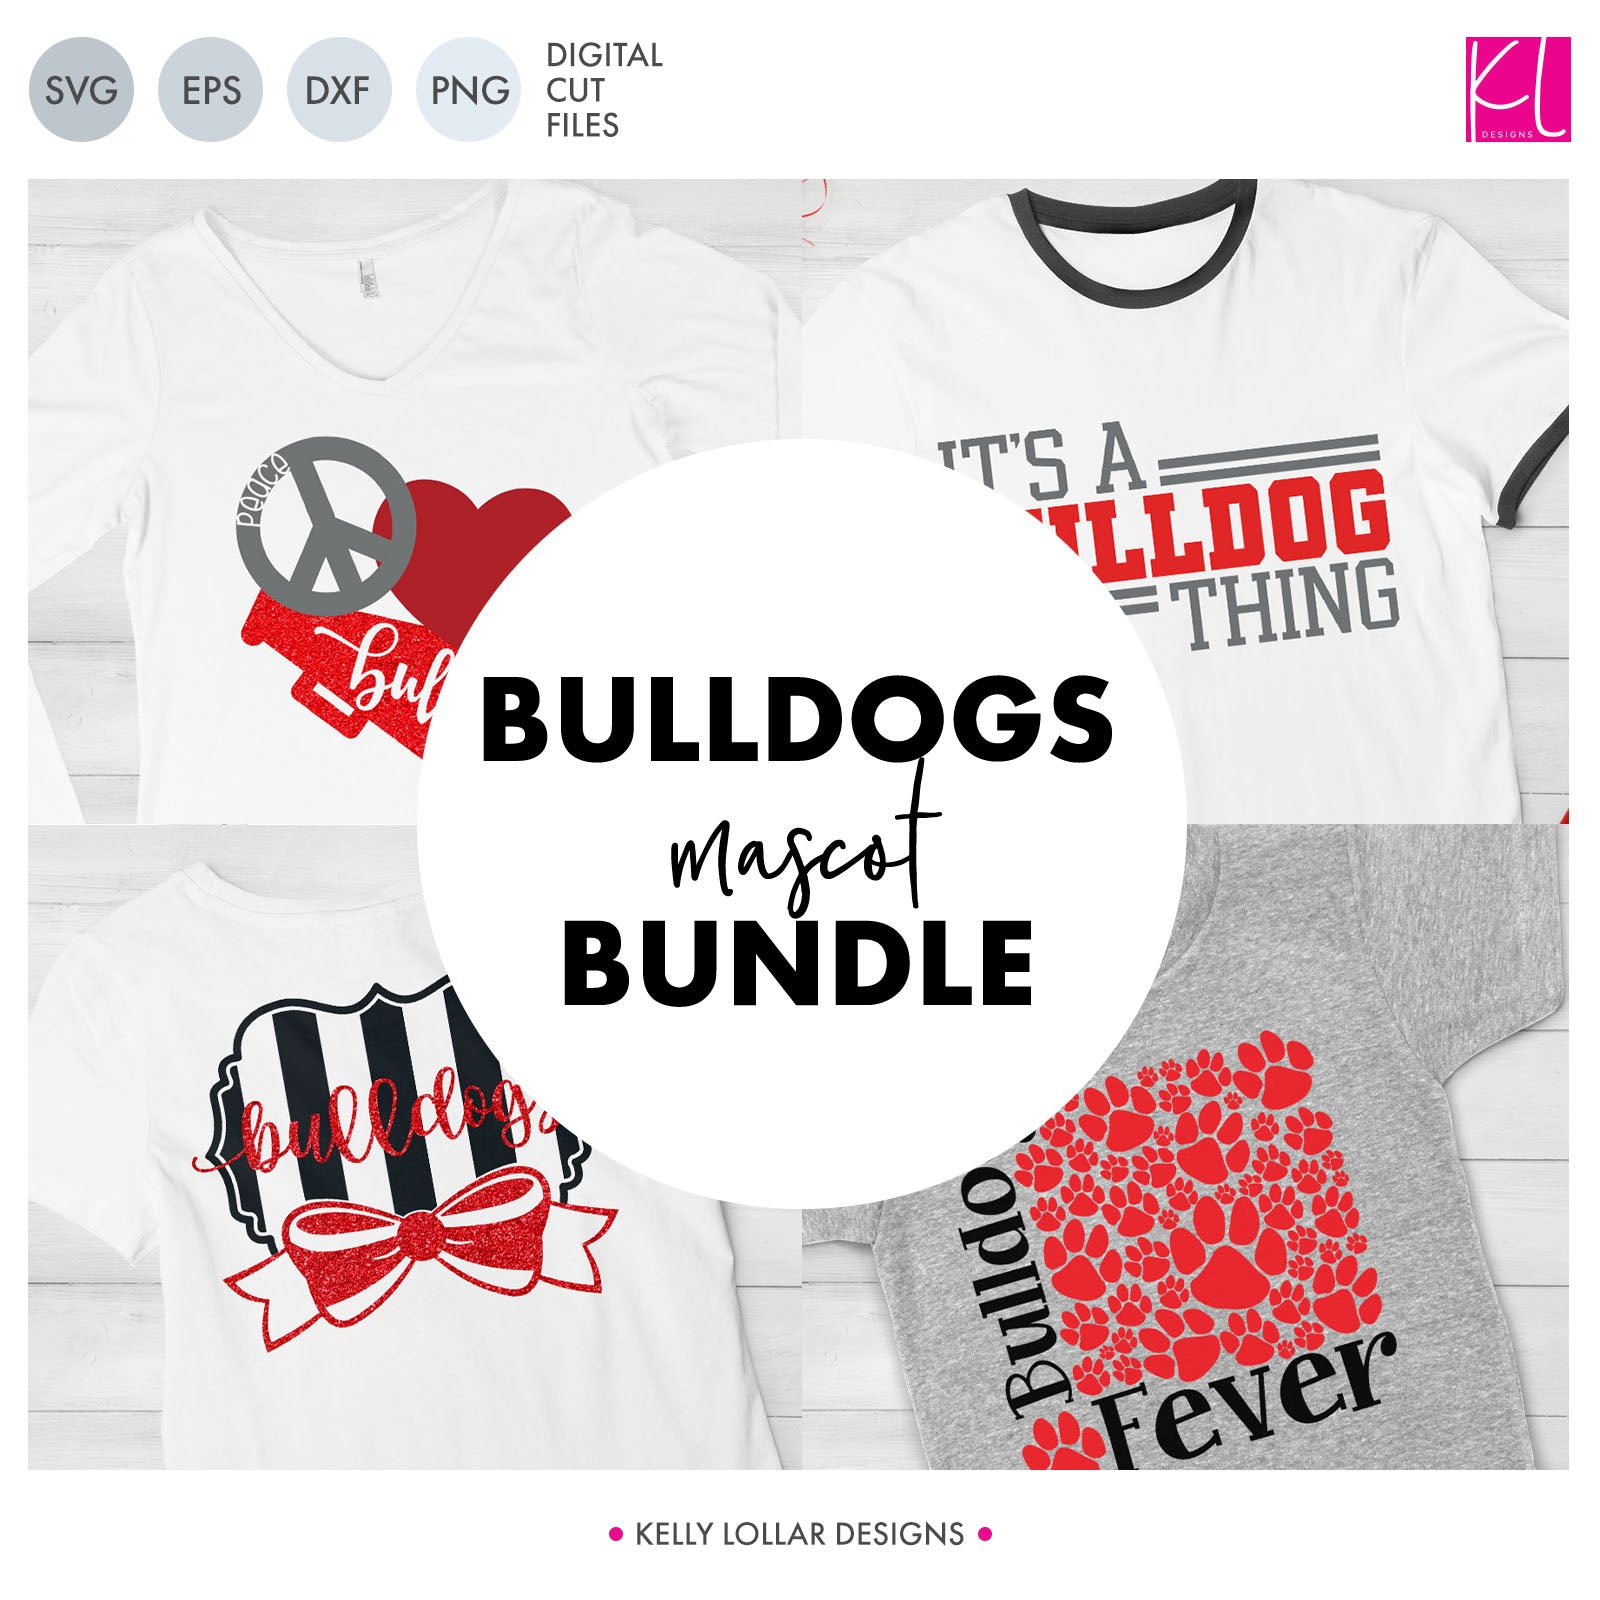 Bulldogs Mascot Bundle | SVG DXF EPS PNG Cut Files A perfect bundle for Bulldogs school spirit crafters! This set of 28 designs includes everything from cute and girly to unisex so you'll have a little something for everyone. Includes